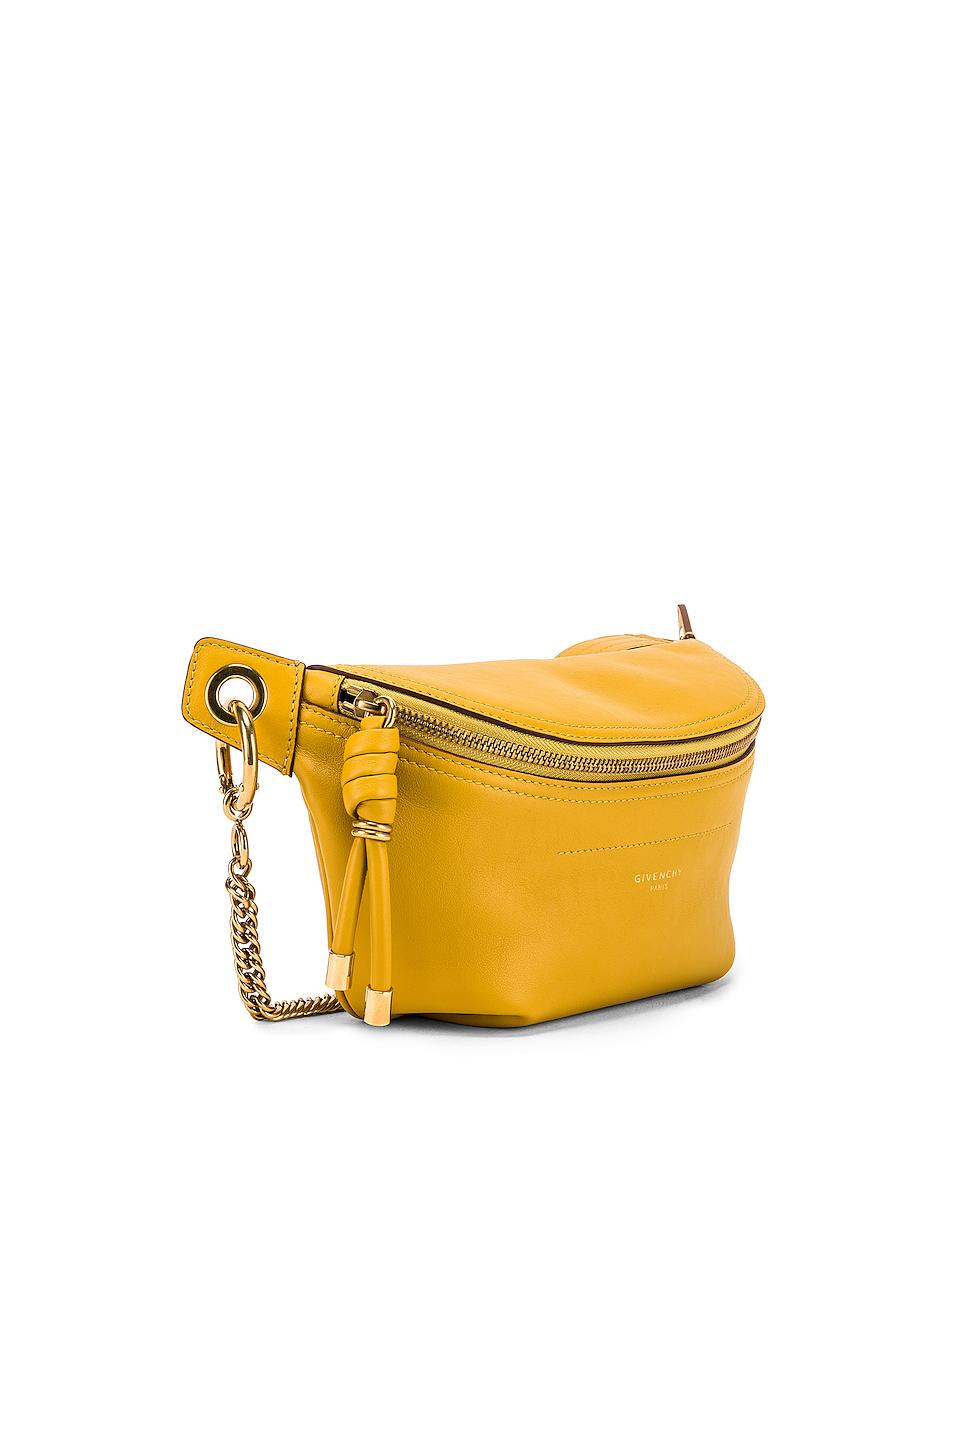 18565c393c Givenchy - Yellow Whip Chain Belt Bag - Lyst. View fullscreen